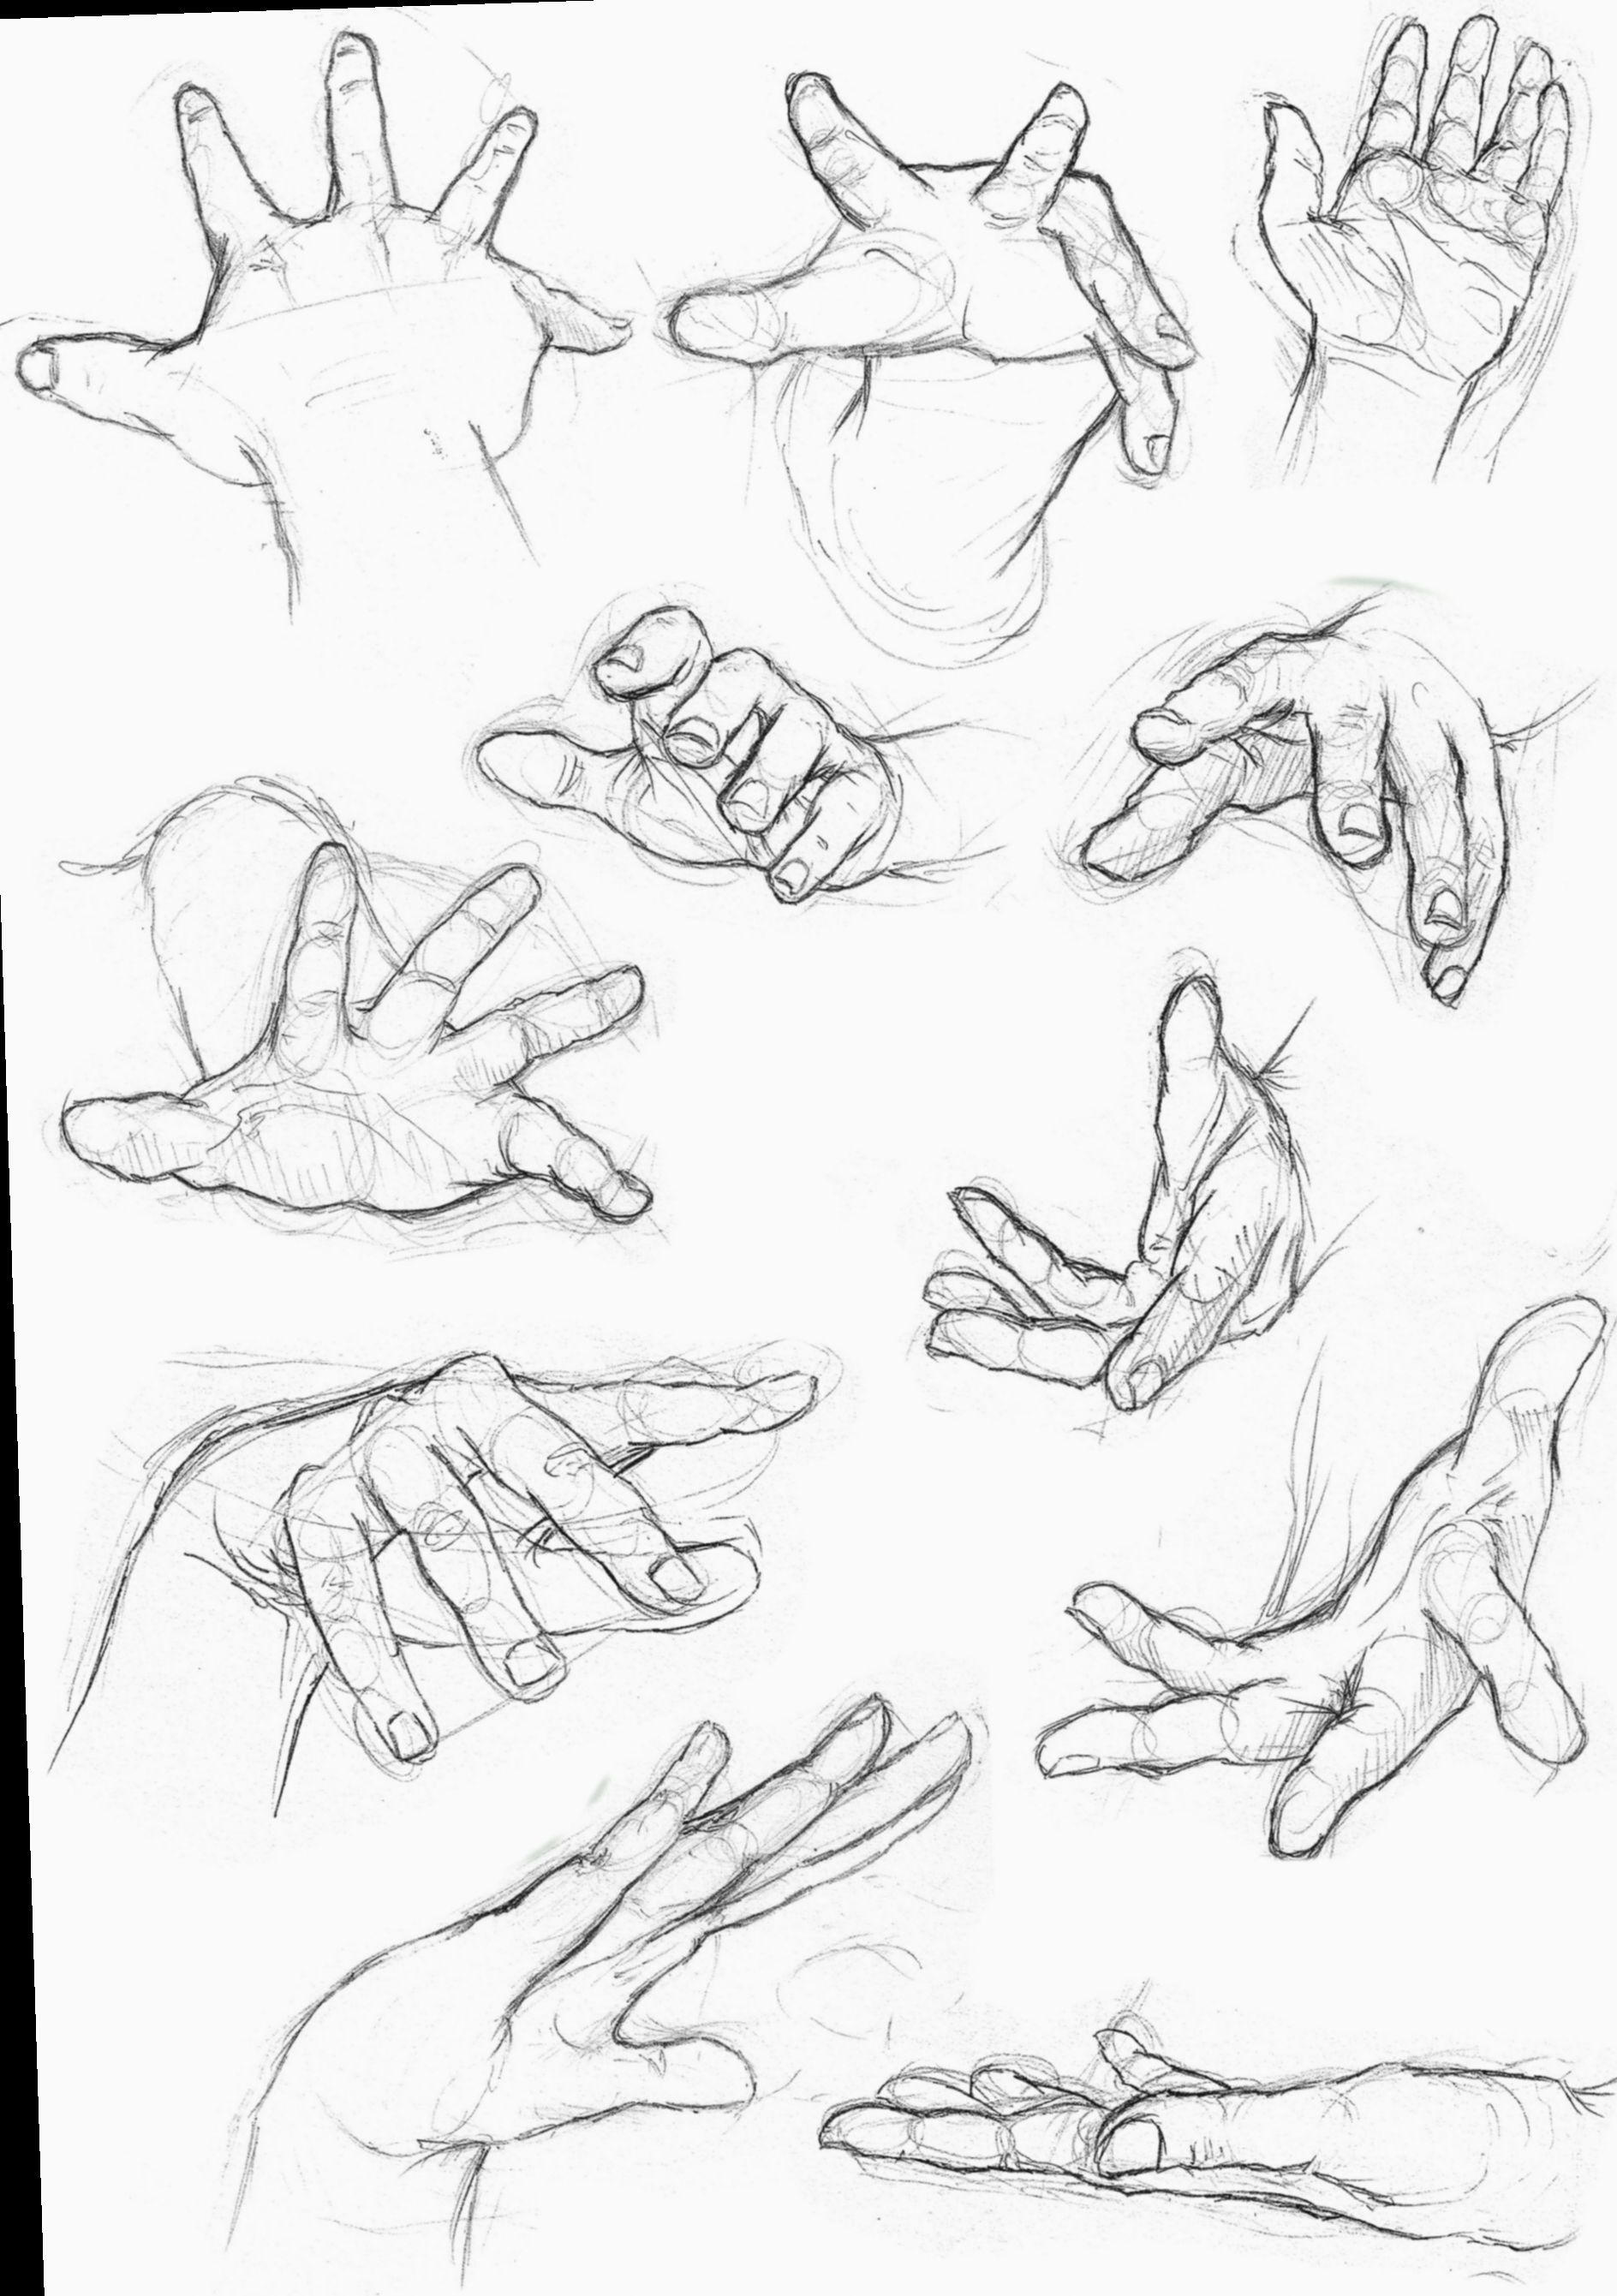 Drawing Reference Anatomy Anime Eyedrawing Eyesketch Drawingeyes Hand Drawing Reference Hand Reference Hand Sketch